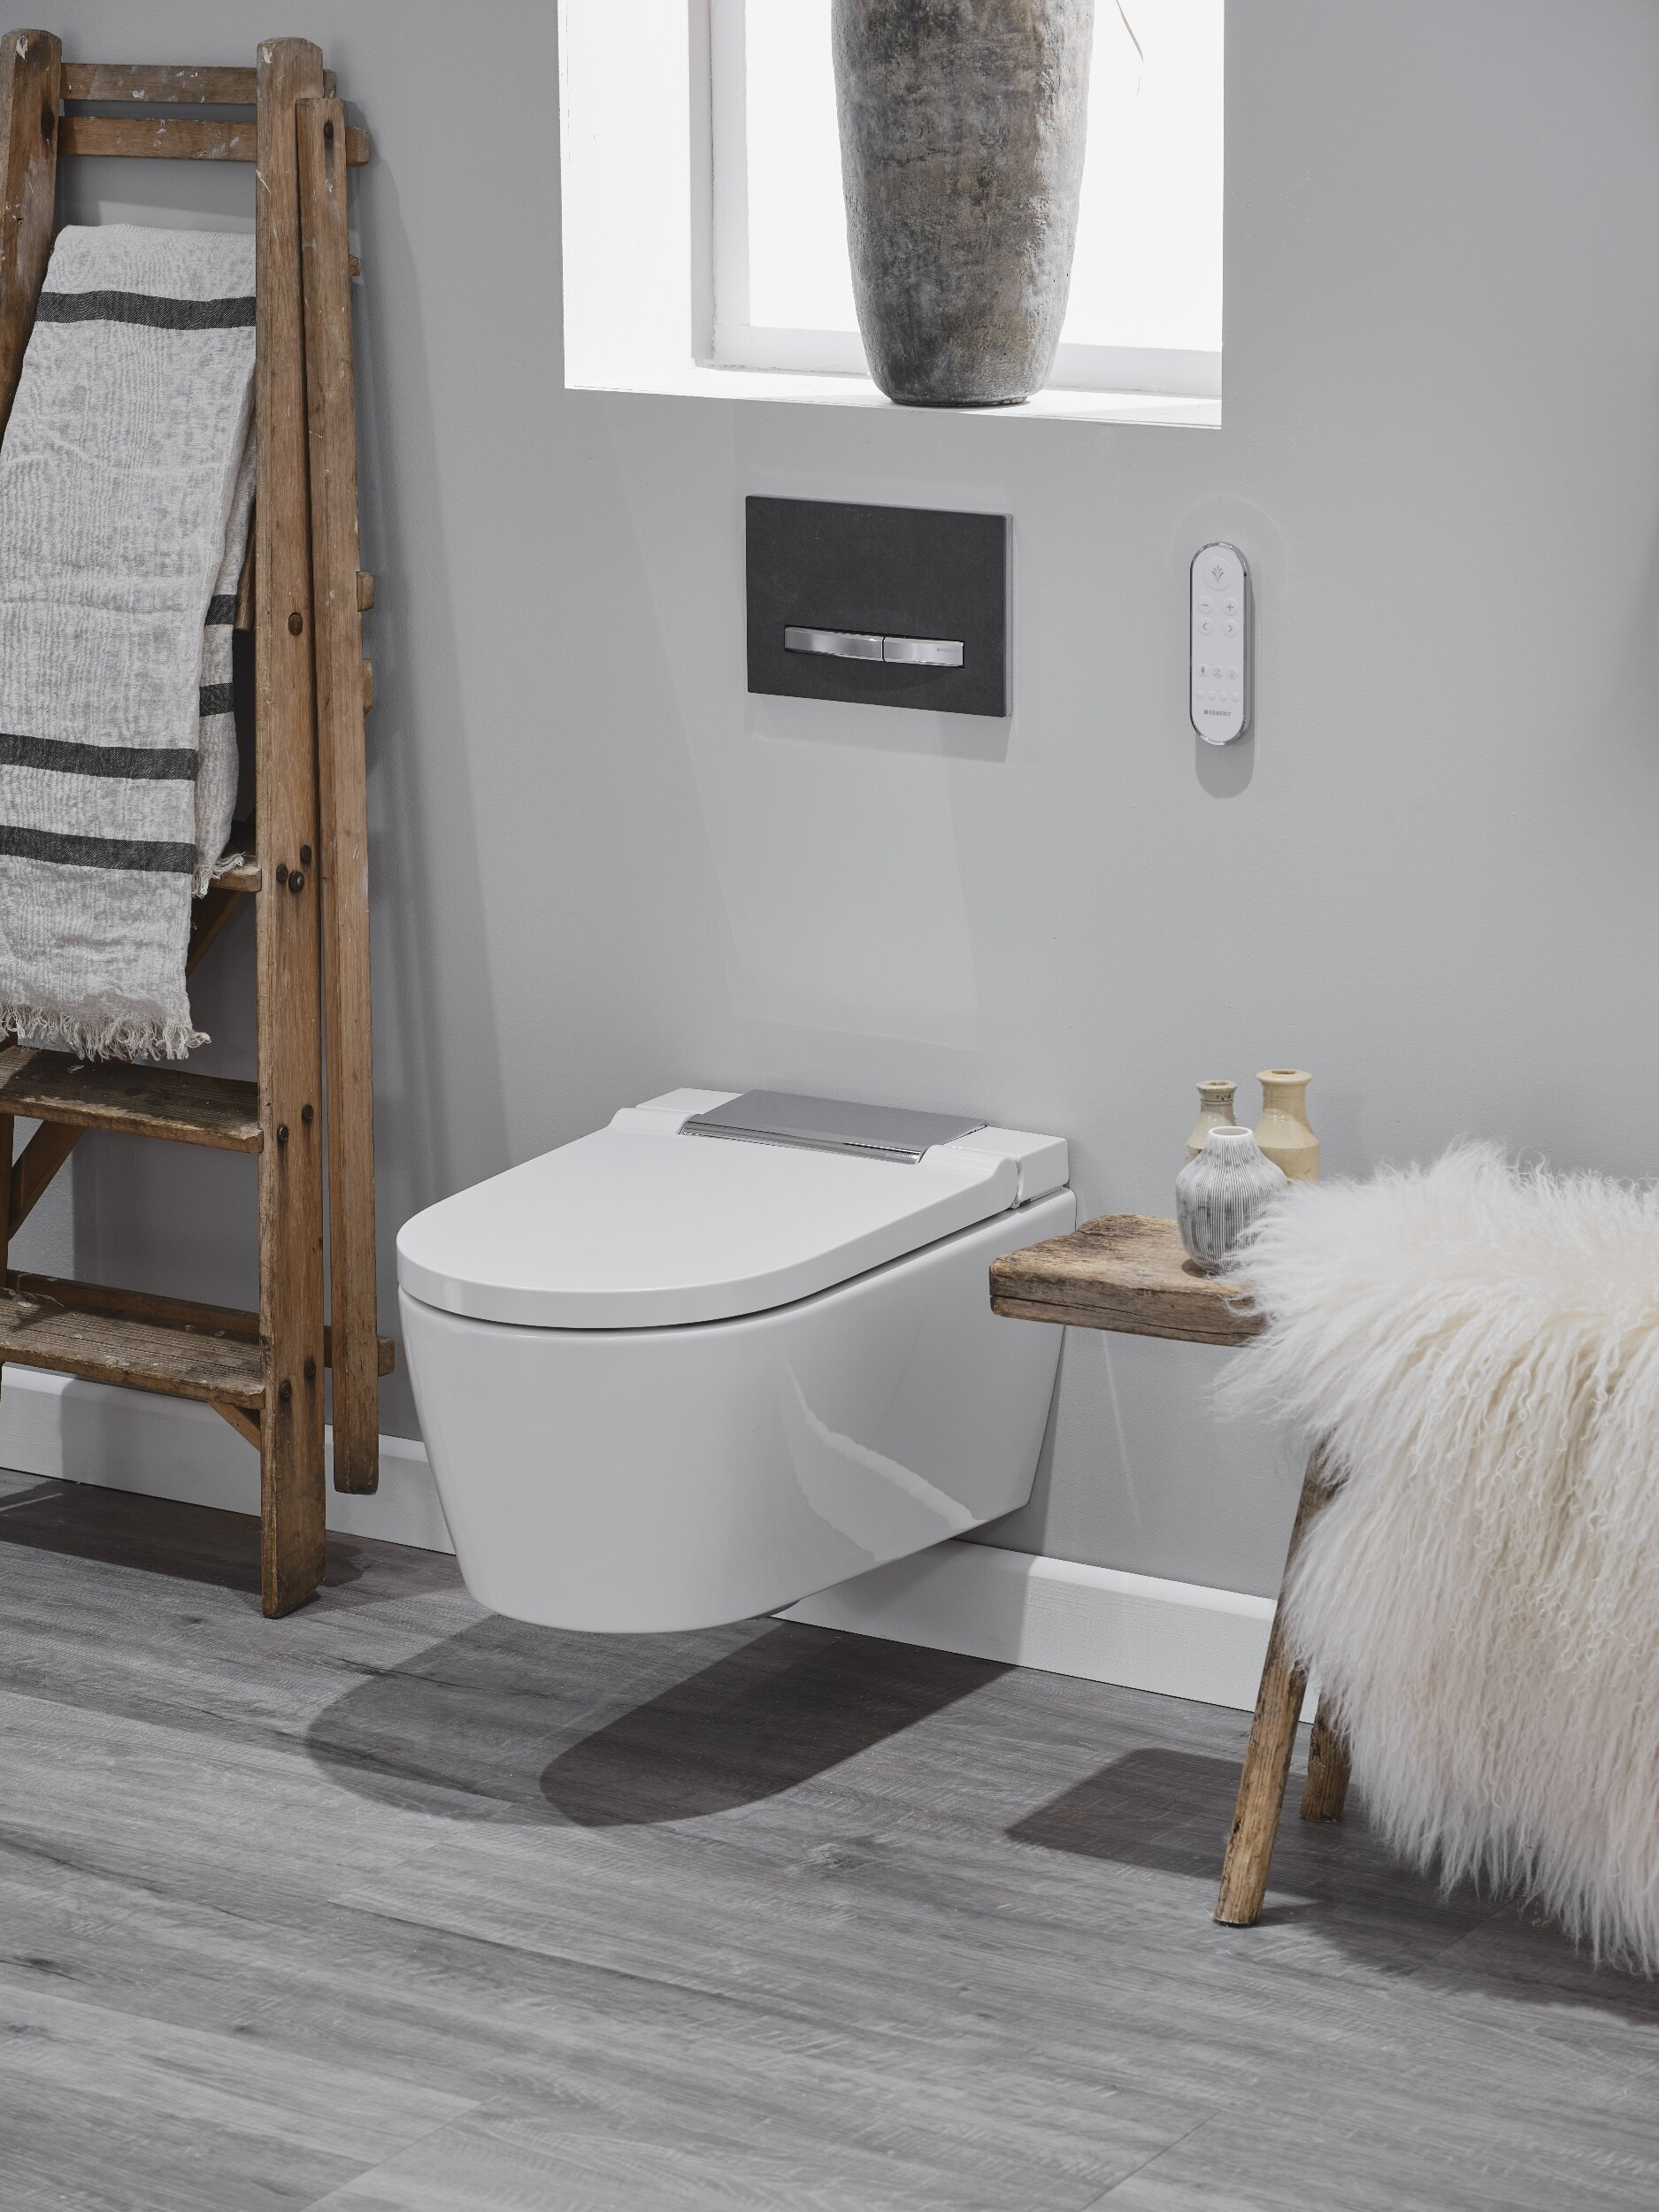 Geberit's soft touch flush plates ensure the tranquility of your bathroom experience is not disturbed